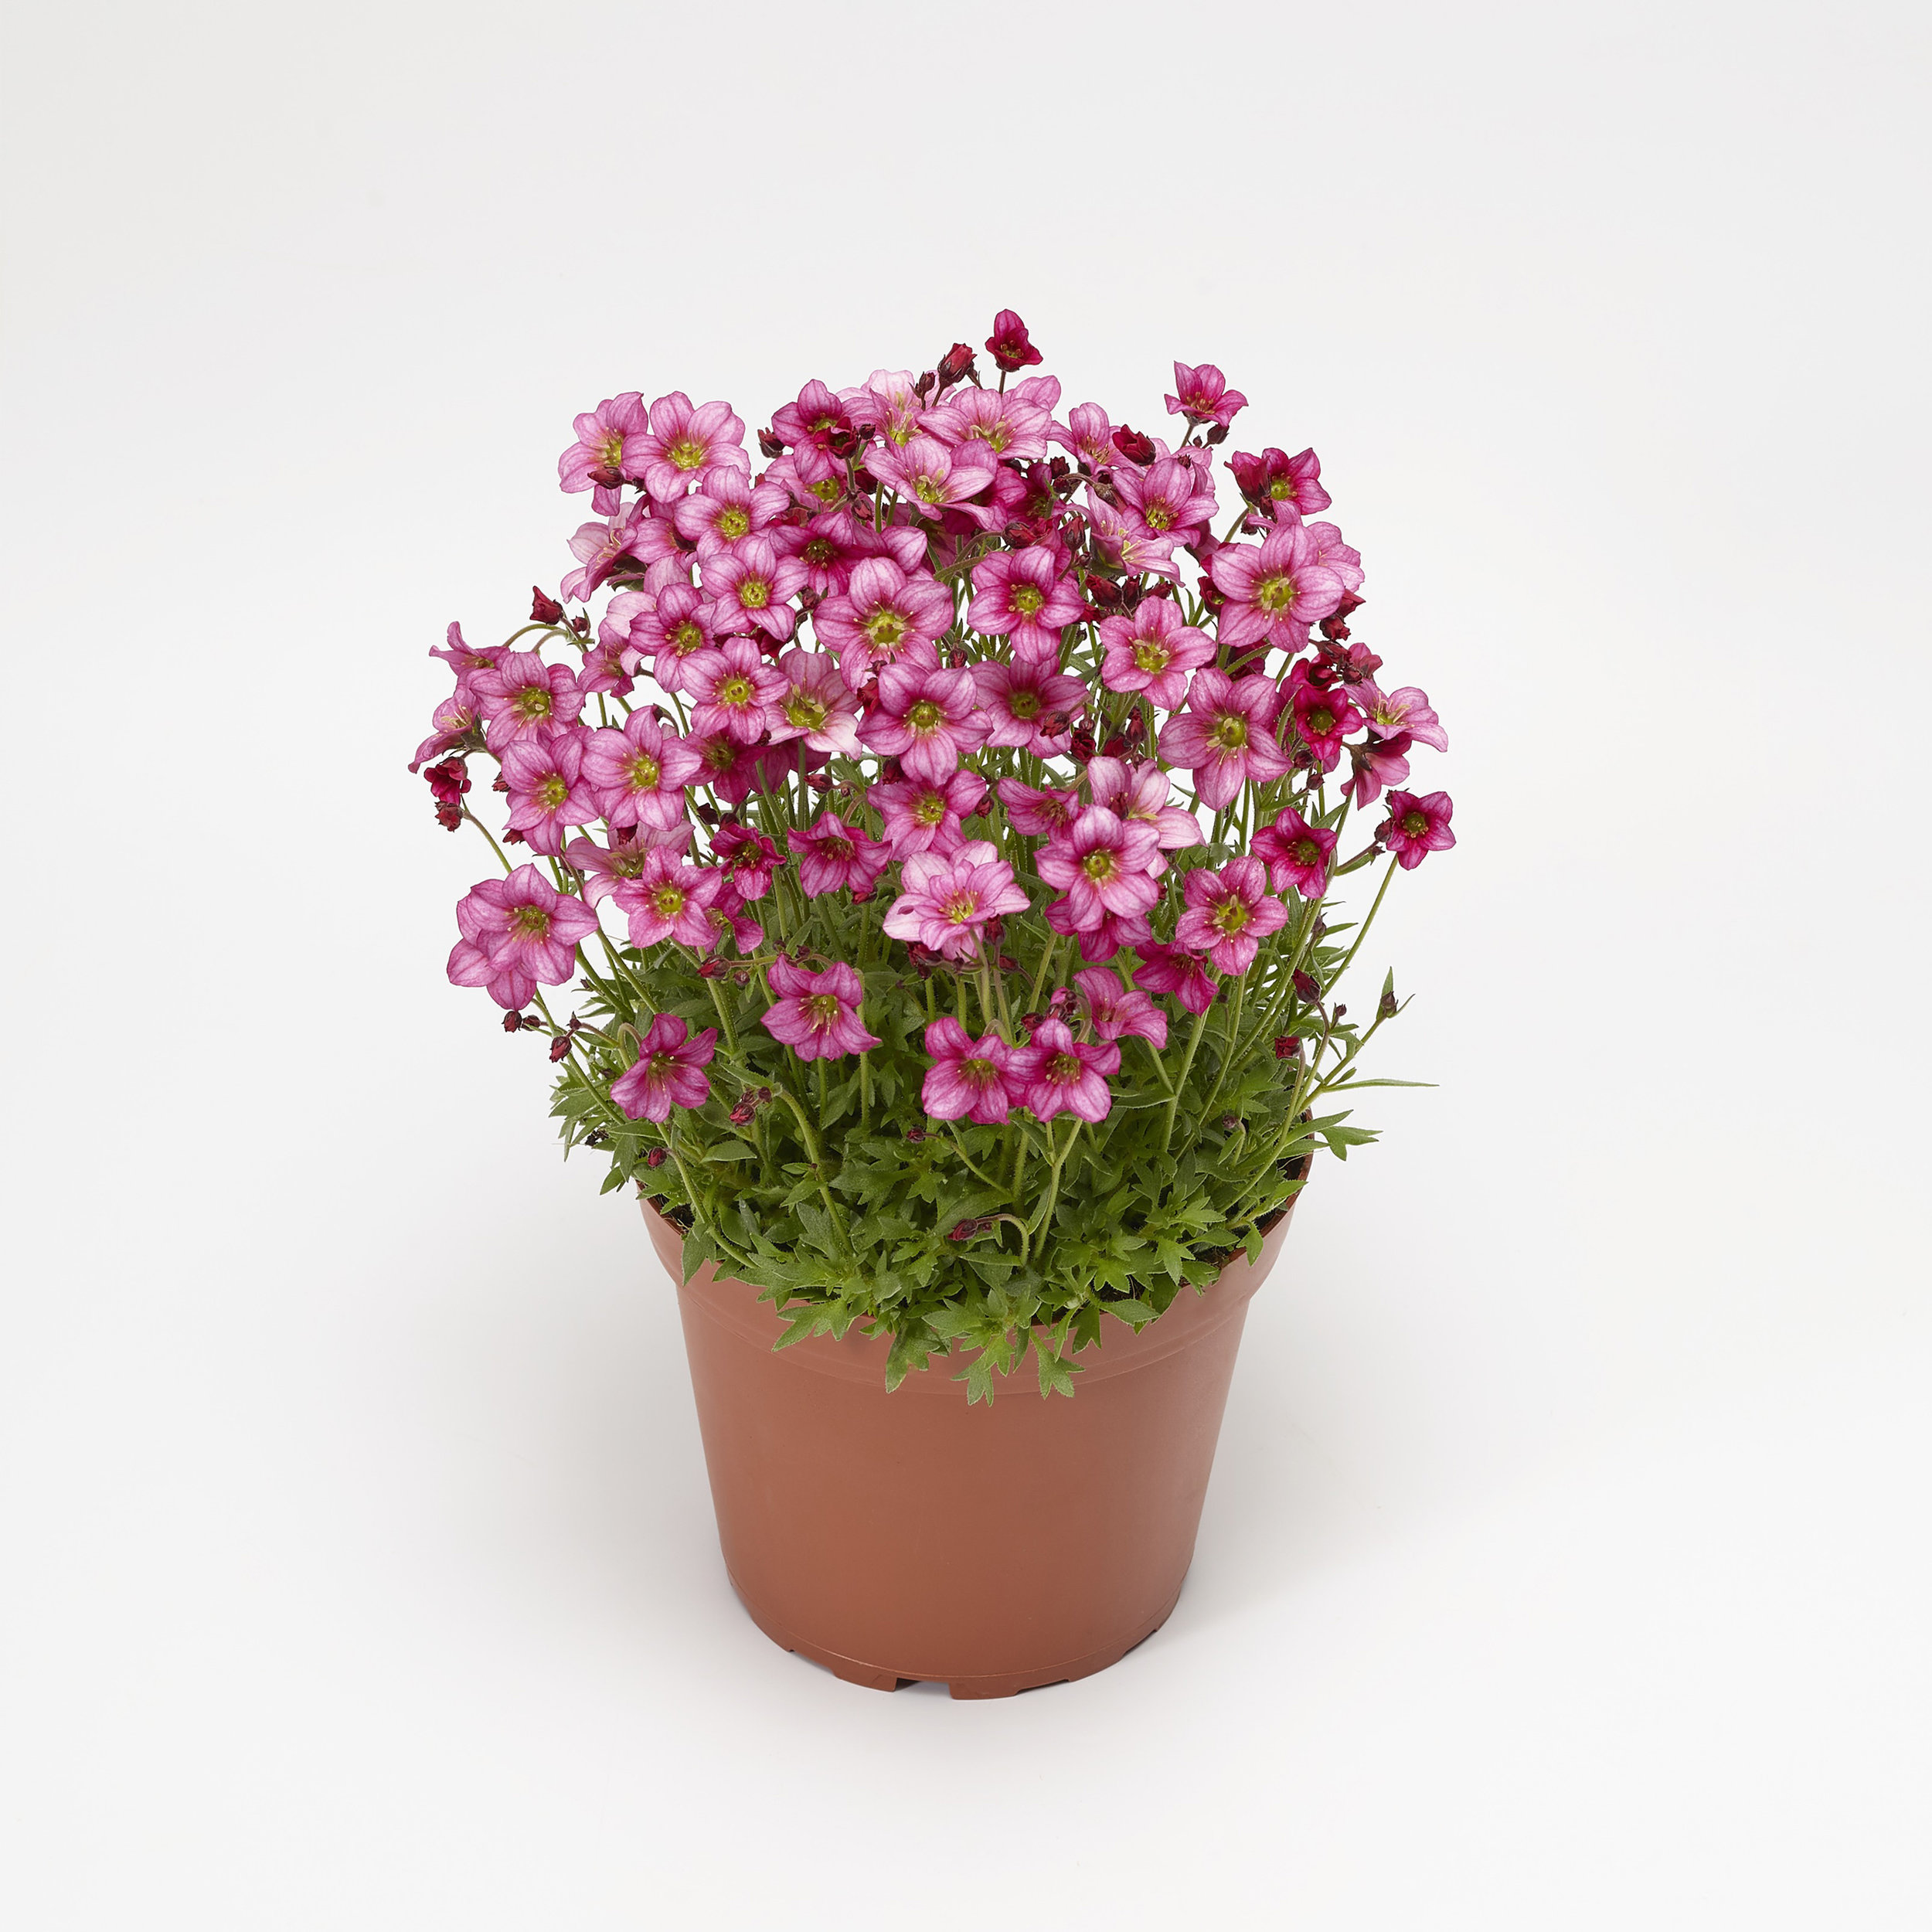 HR_Vegetative_Saxifraga_Alpino_Early™_Alpino™_Early_Rose_70064269_1.jpg